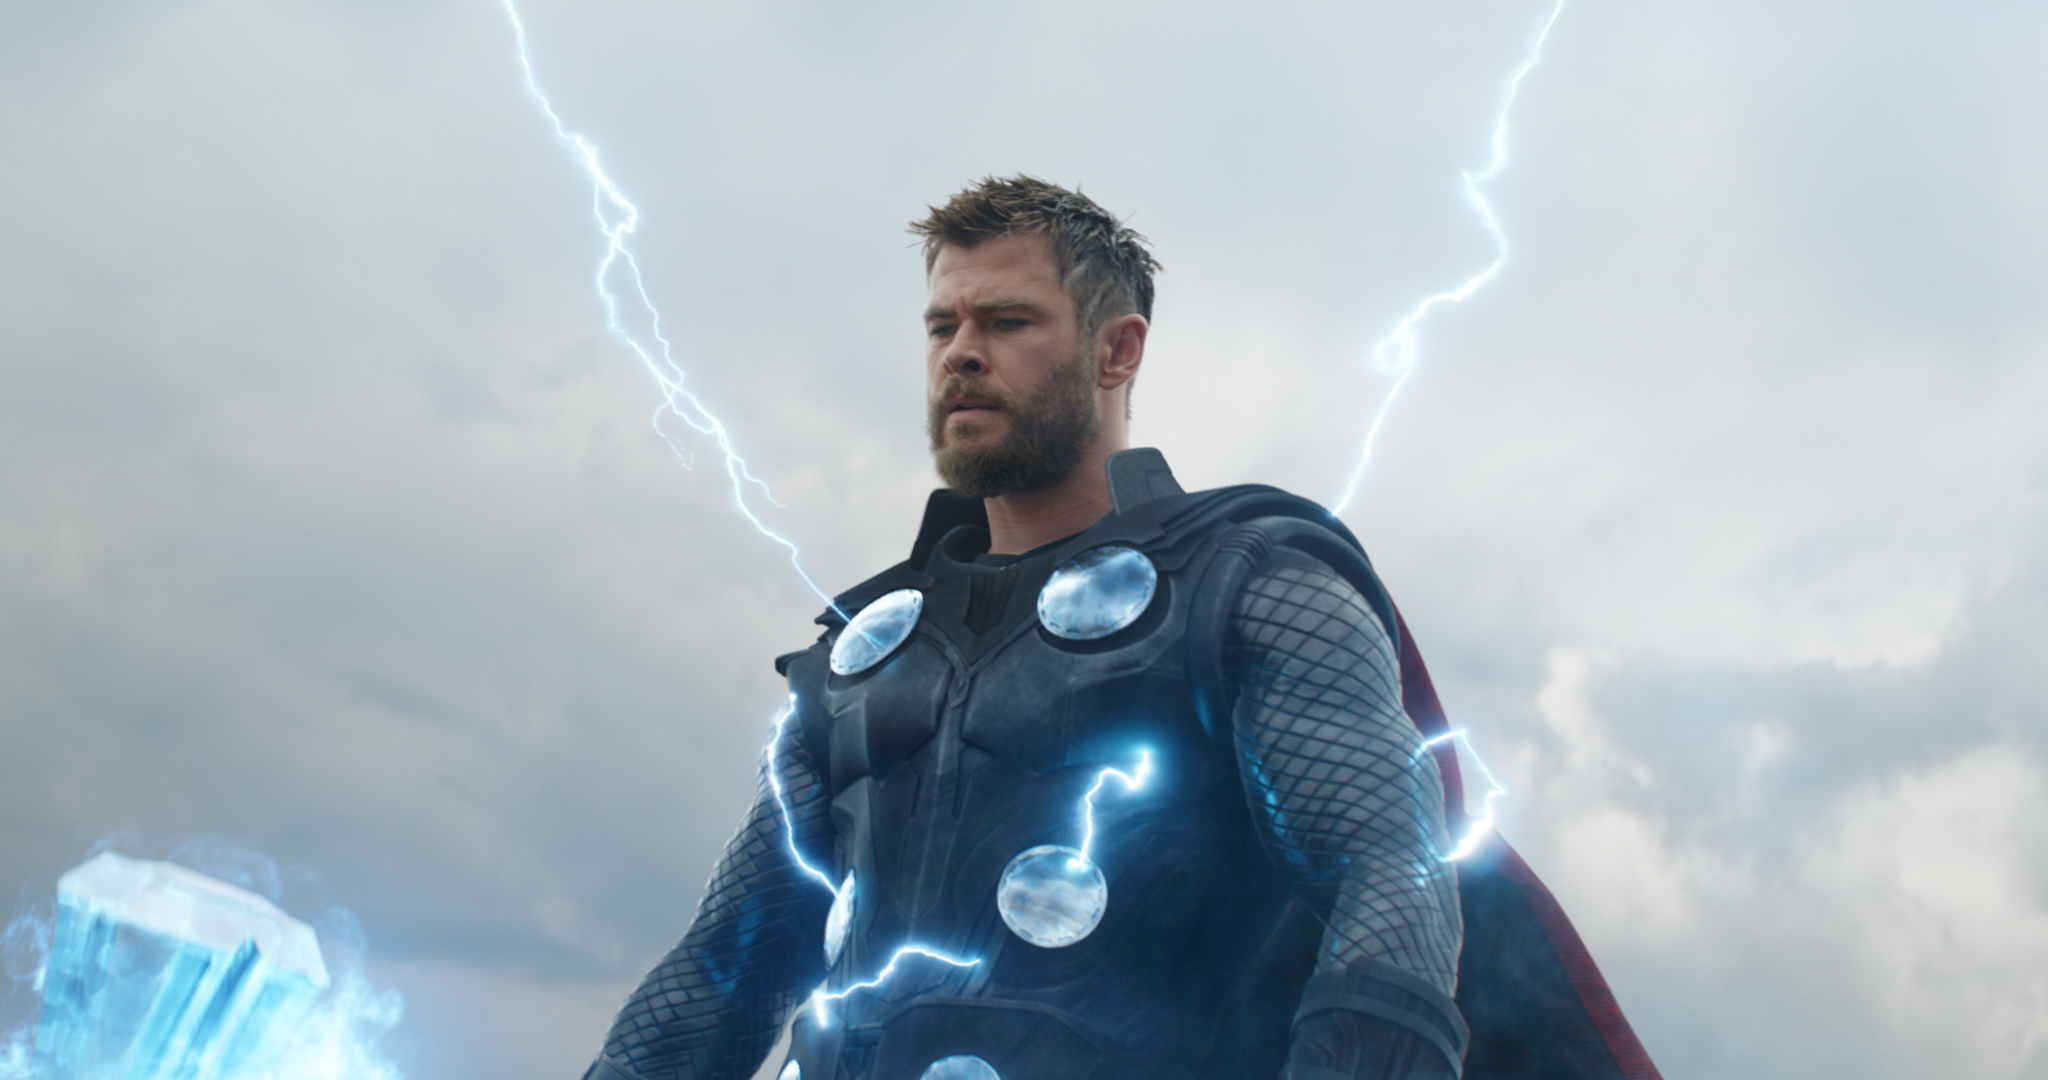 Avengers: Endgame' Easter Eggs: 11 References You Might Miss (No